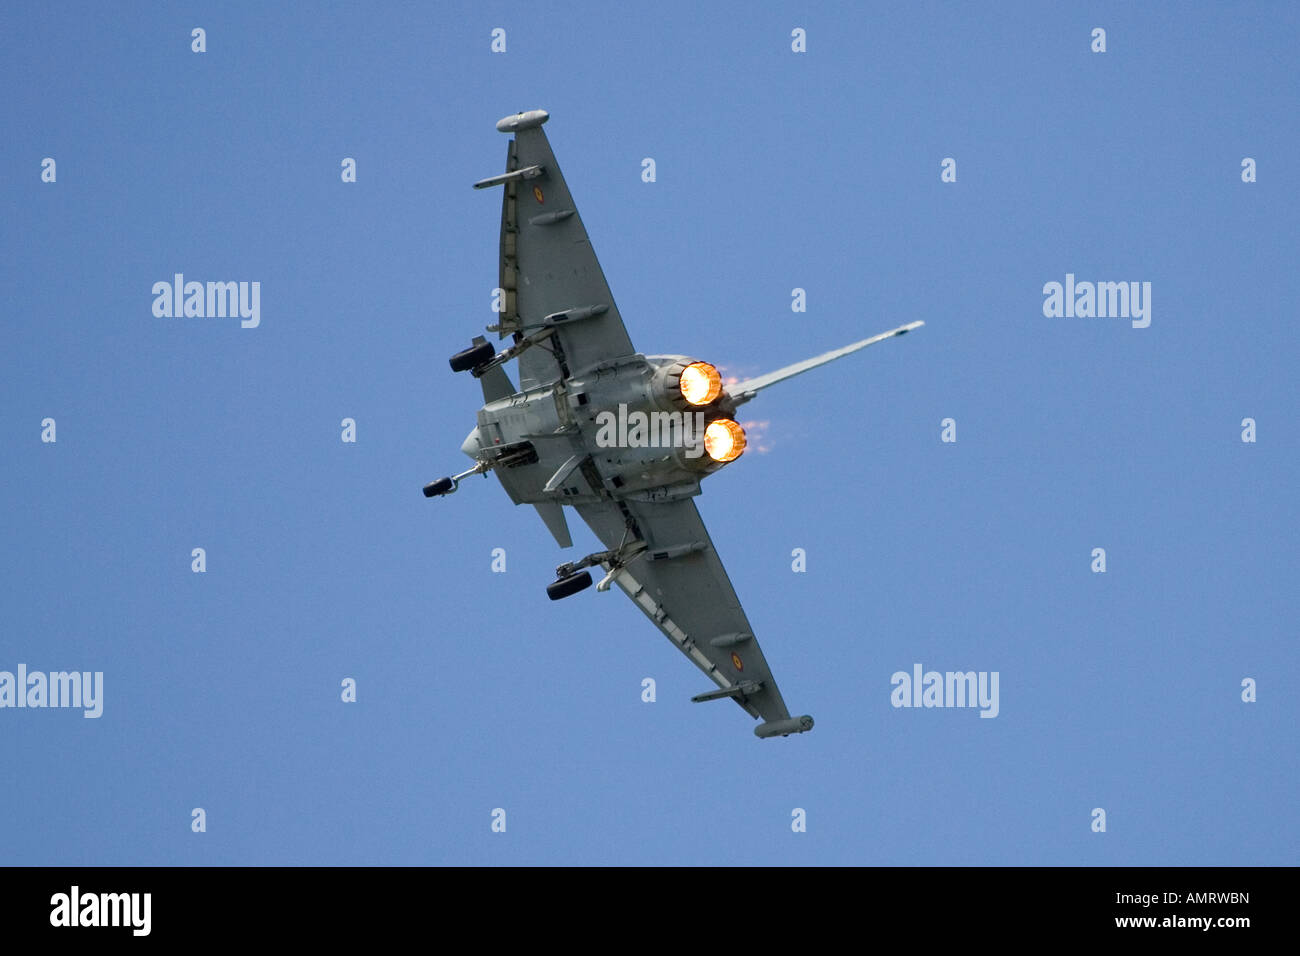 Royal Air Force Eurofighter Typhoon T1 twin-engine multi role canard delta strike fighter aircraft with after burners - Stock Image